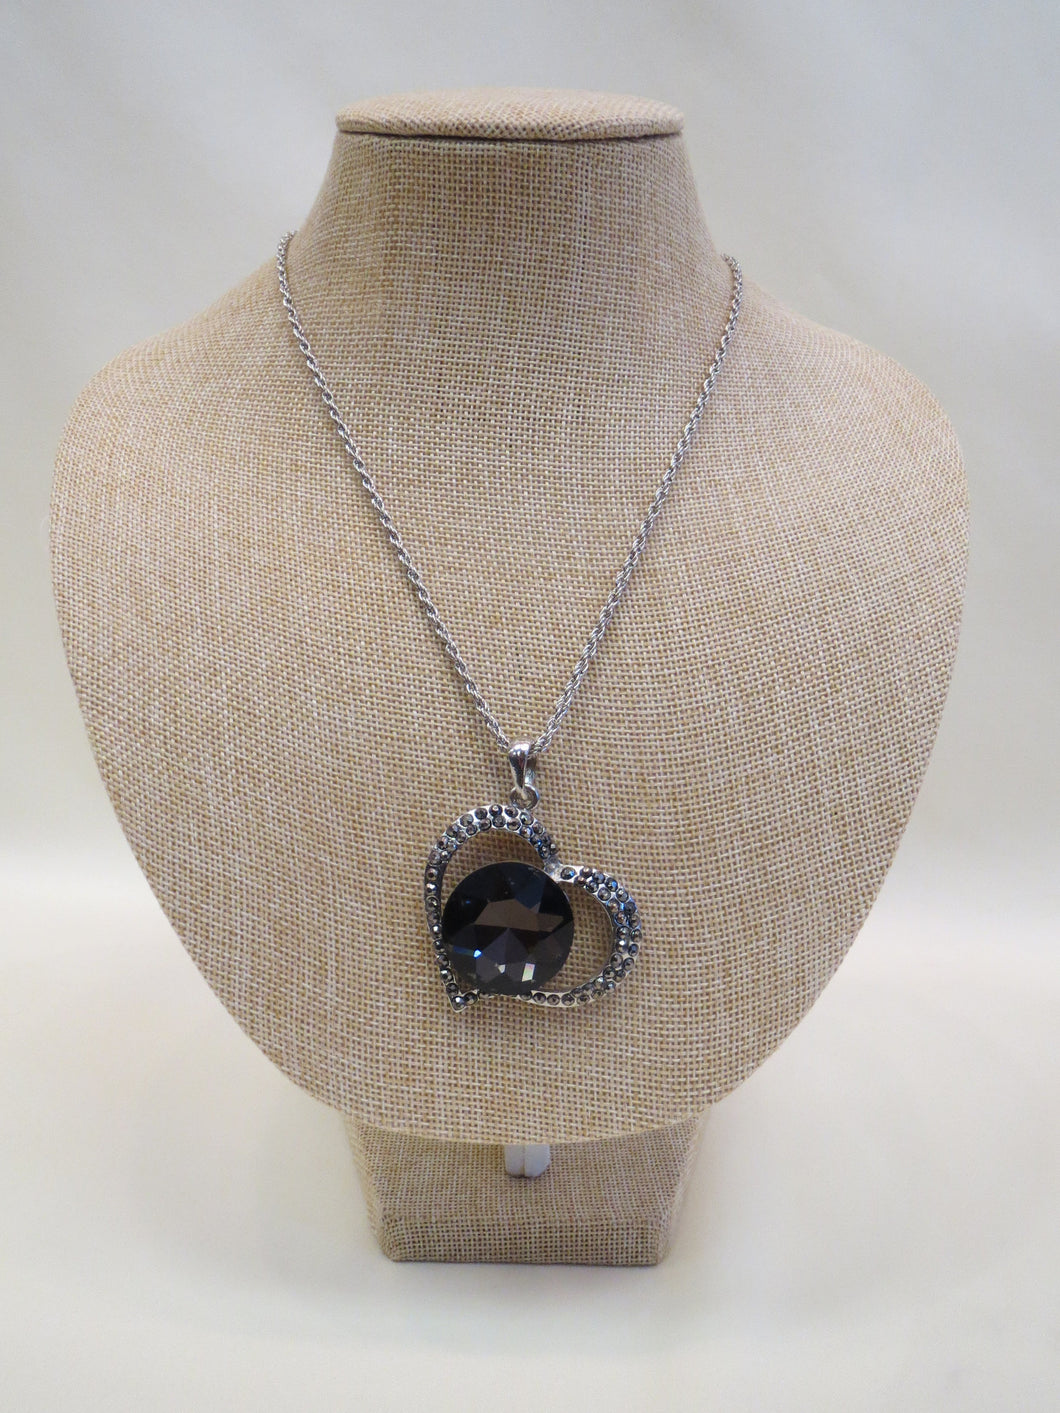 ADO | Heart Necklace with Black/Charcoal Stones - All Decd Out